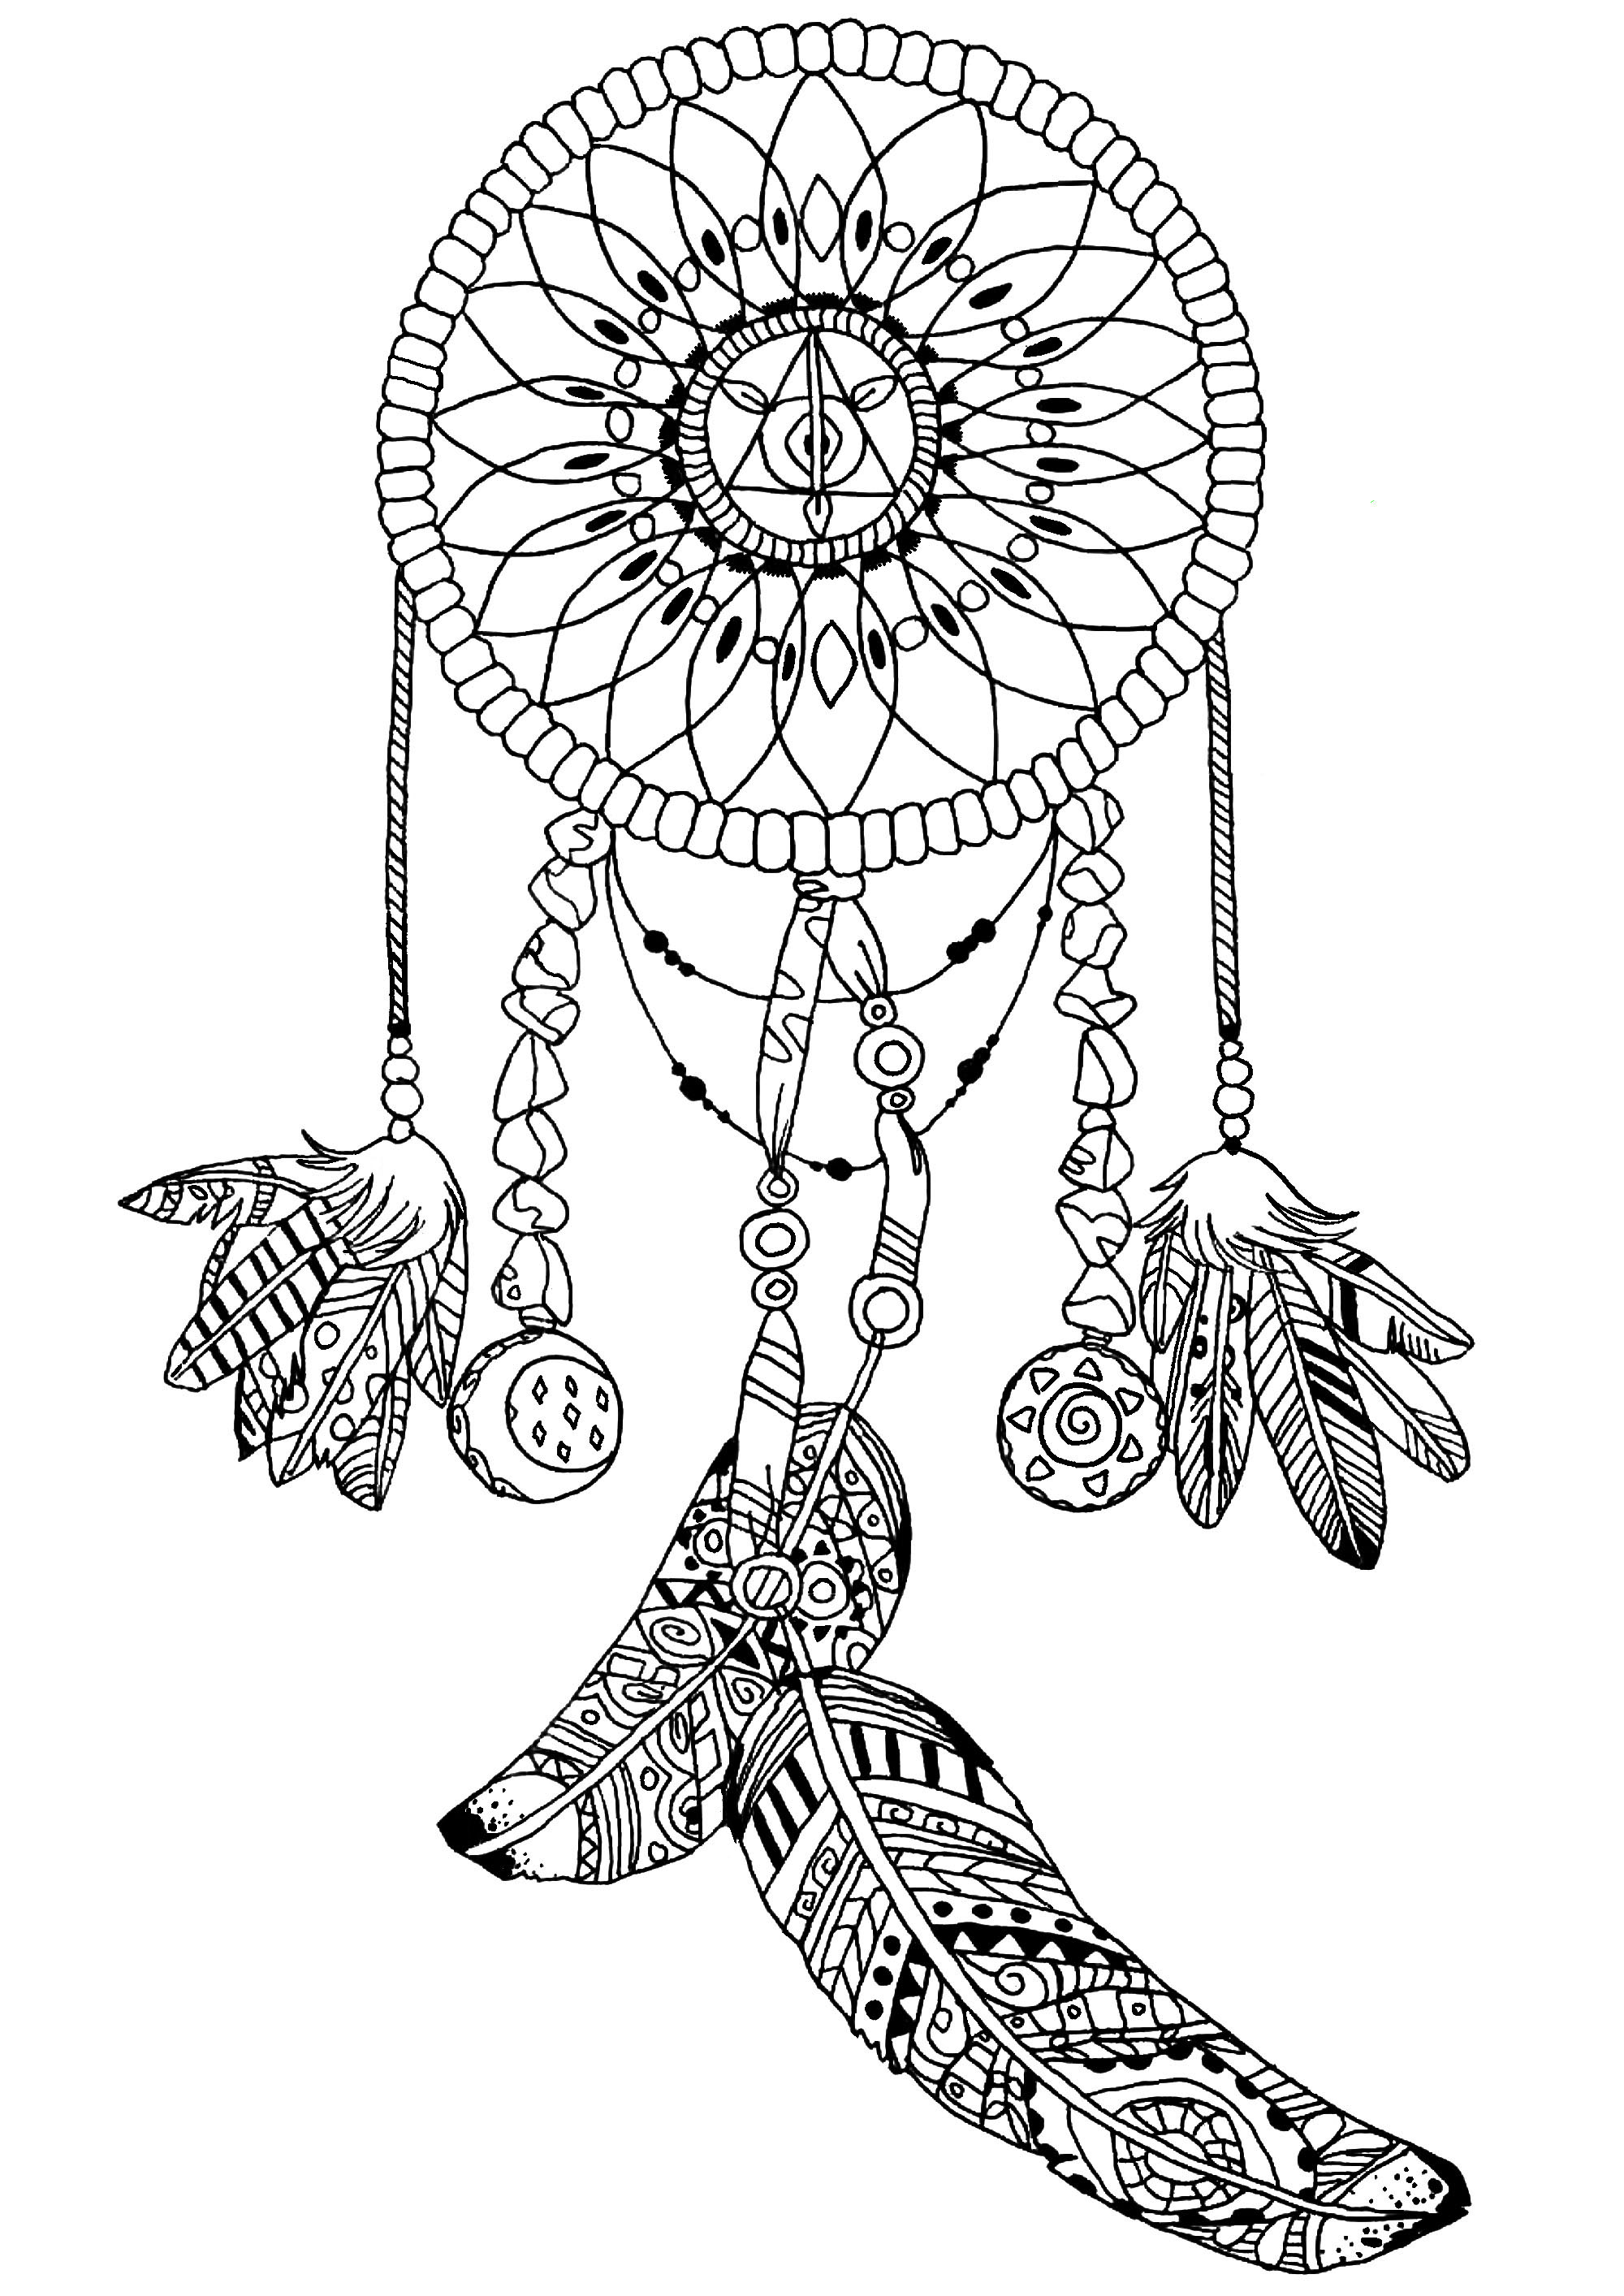 coloring pages for adults dream catchers dreamcatcher coloring page coloring pages for adults coloring for pages catchers adults dream